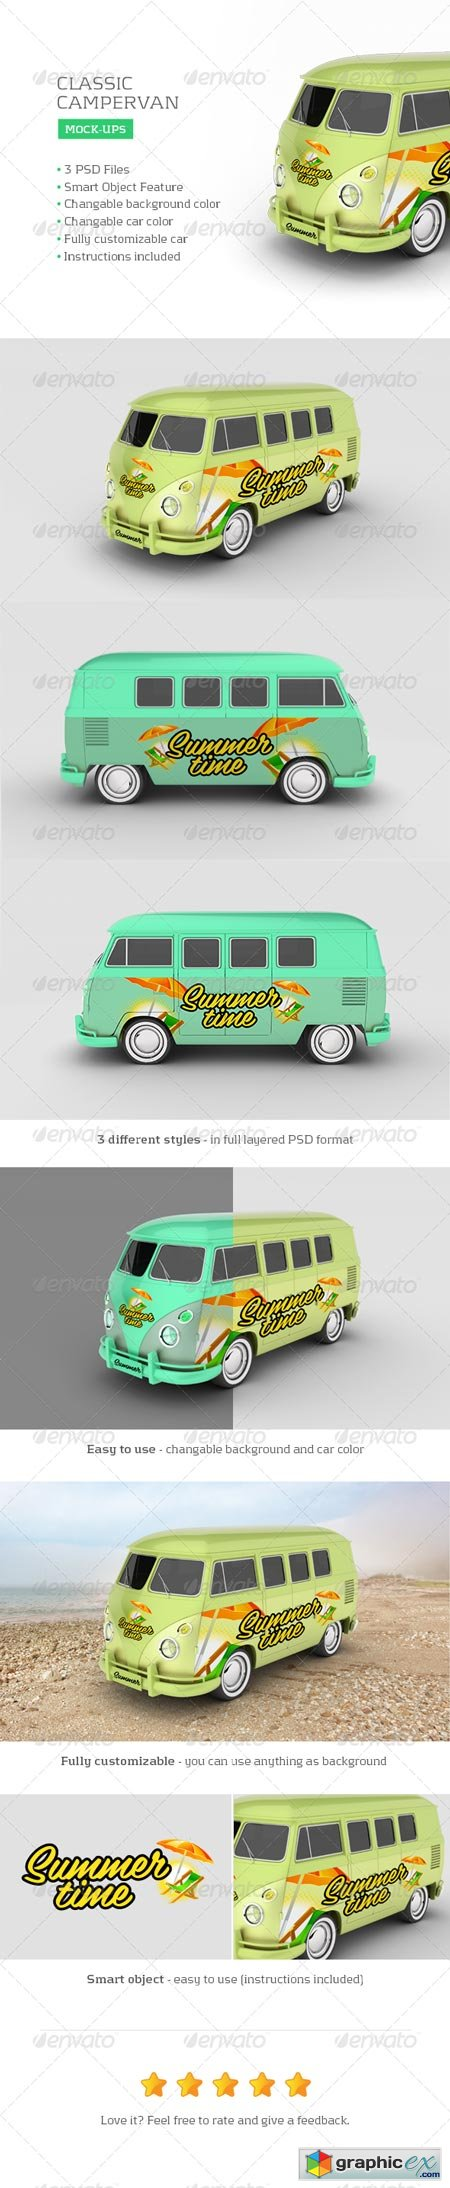 Classic Campervan Car Mock-Up 7815231